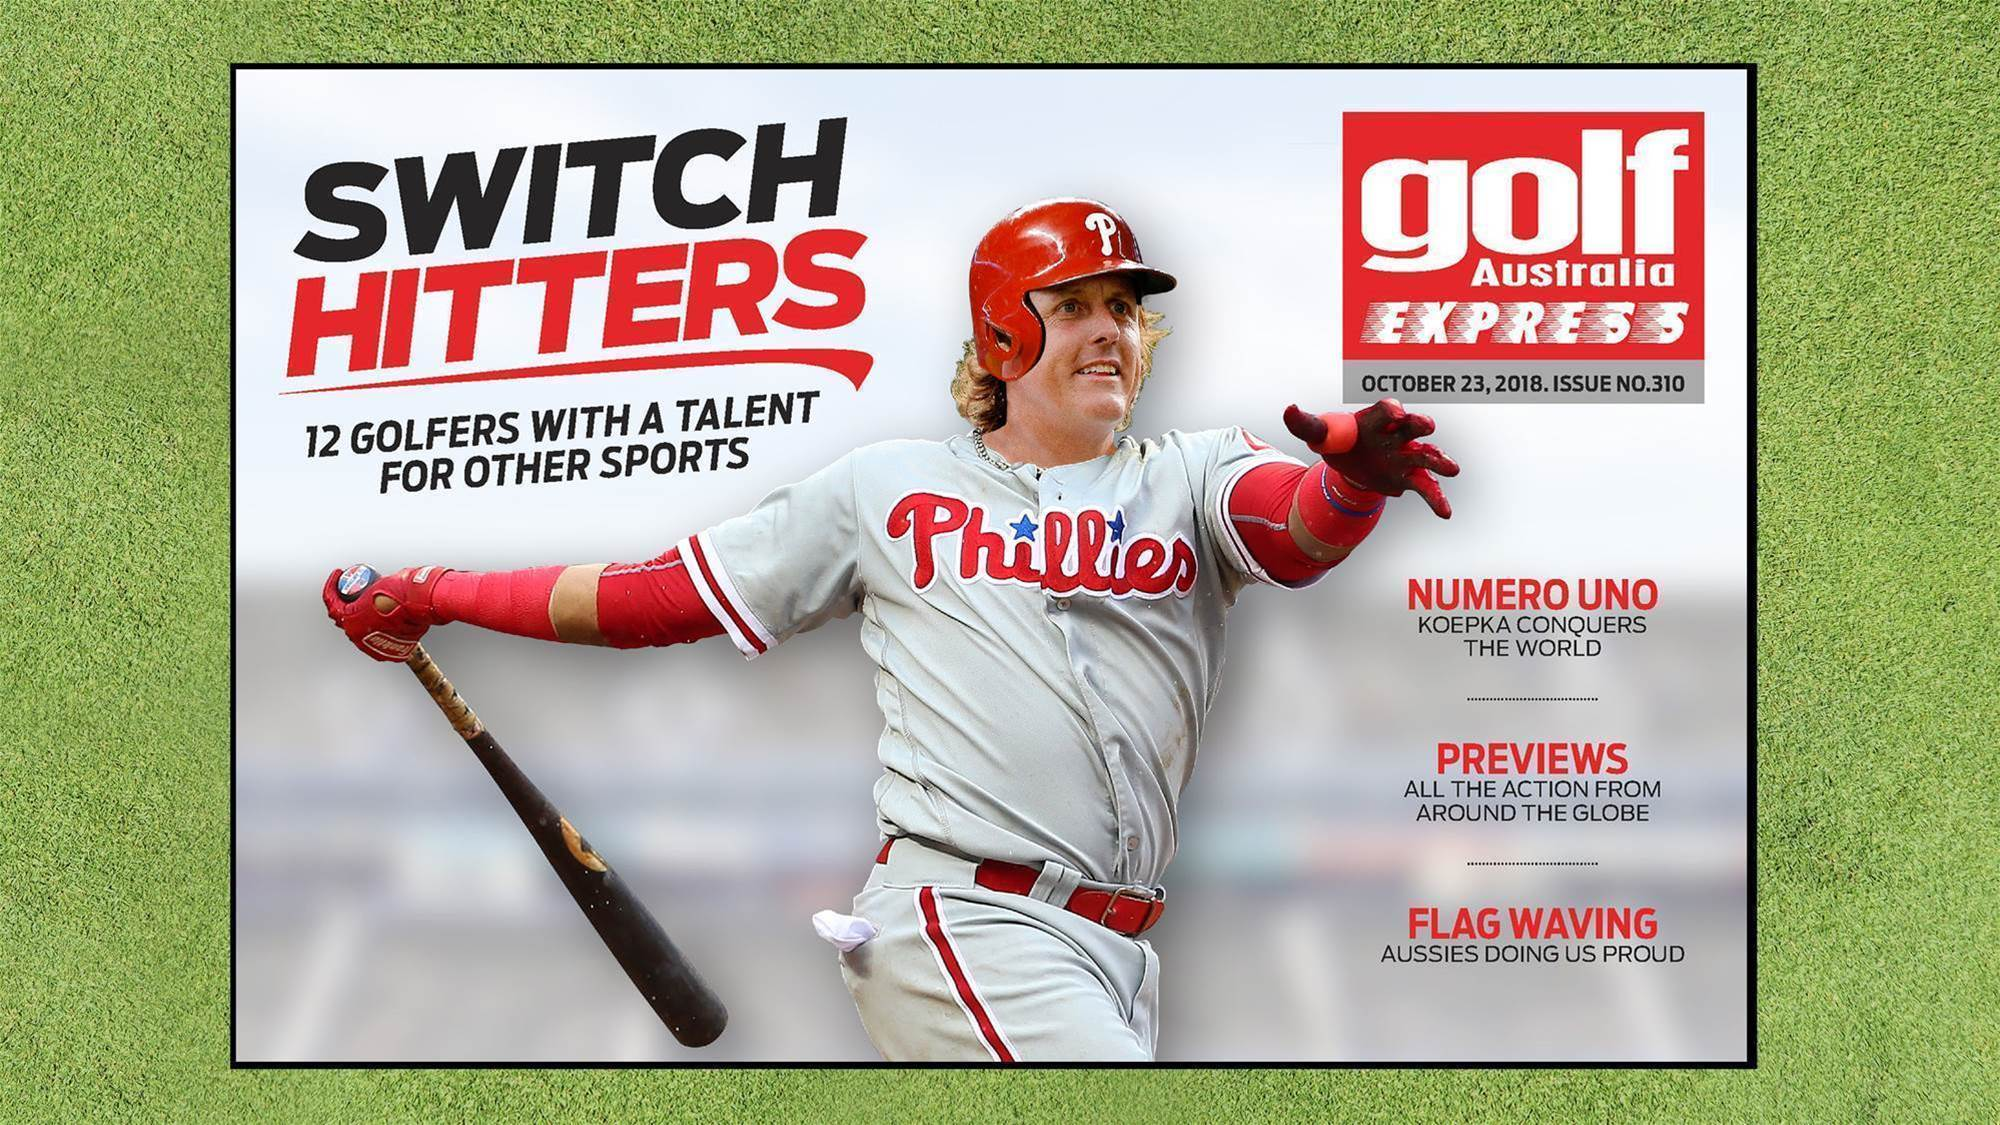 GA Express #310: Switch Hitters